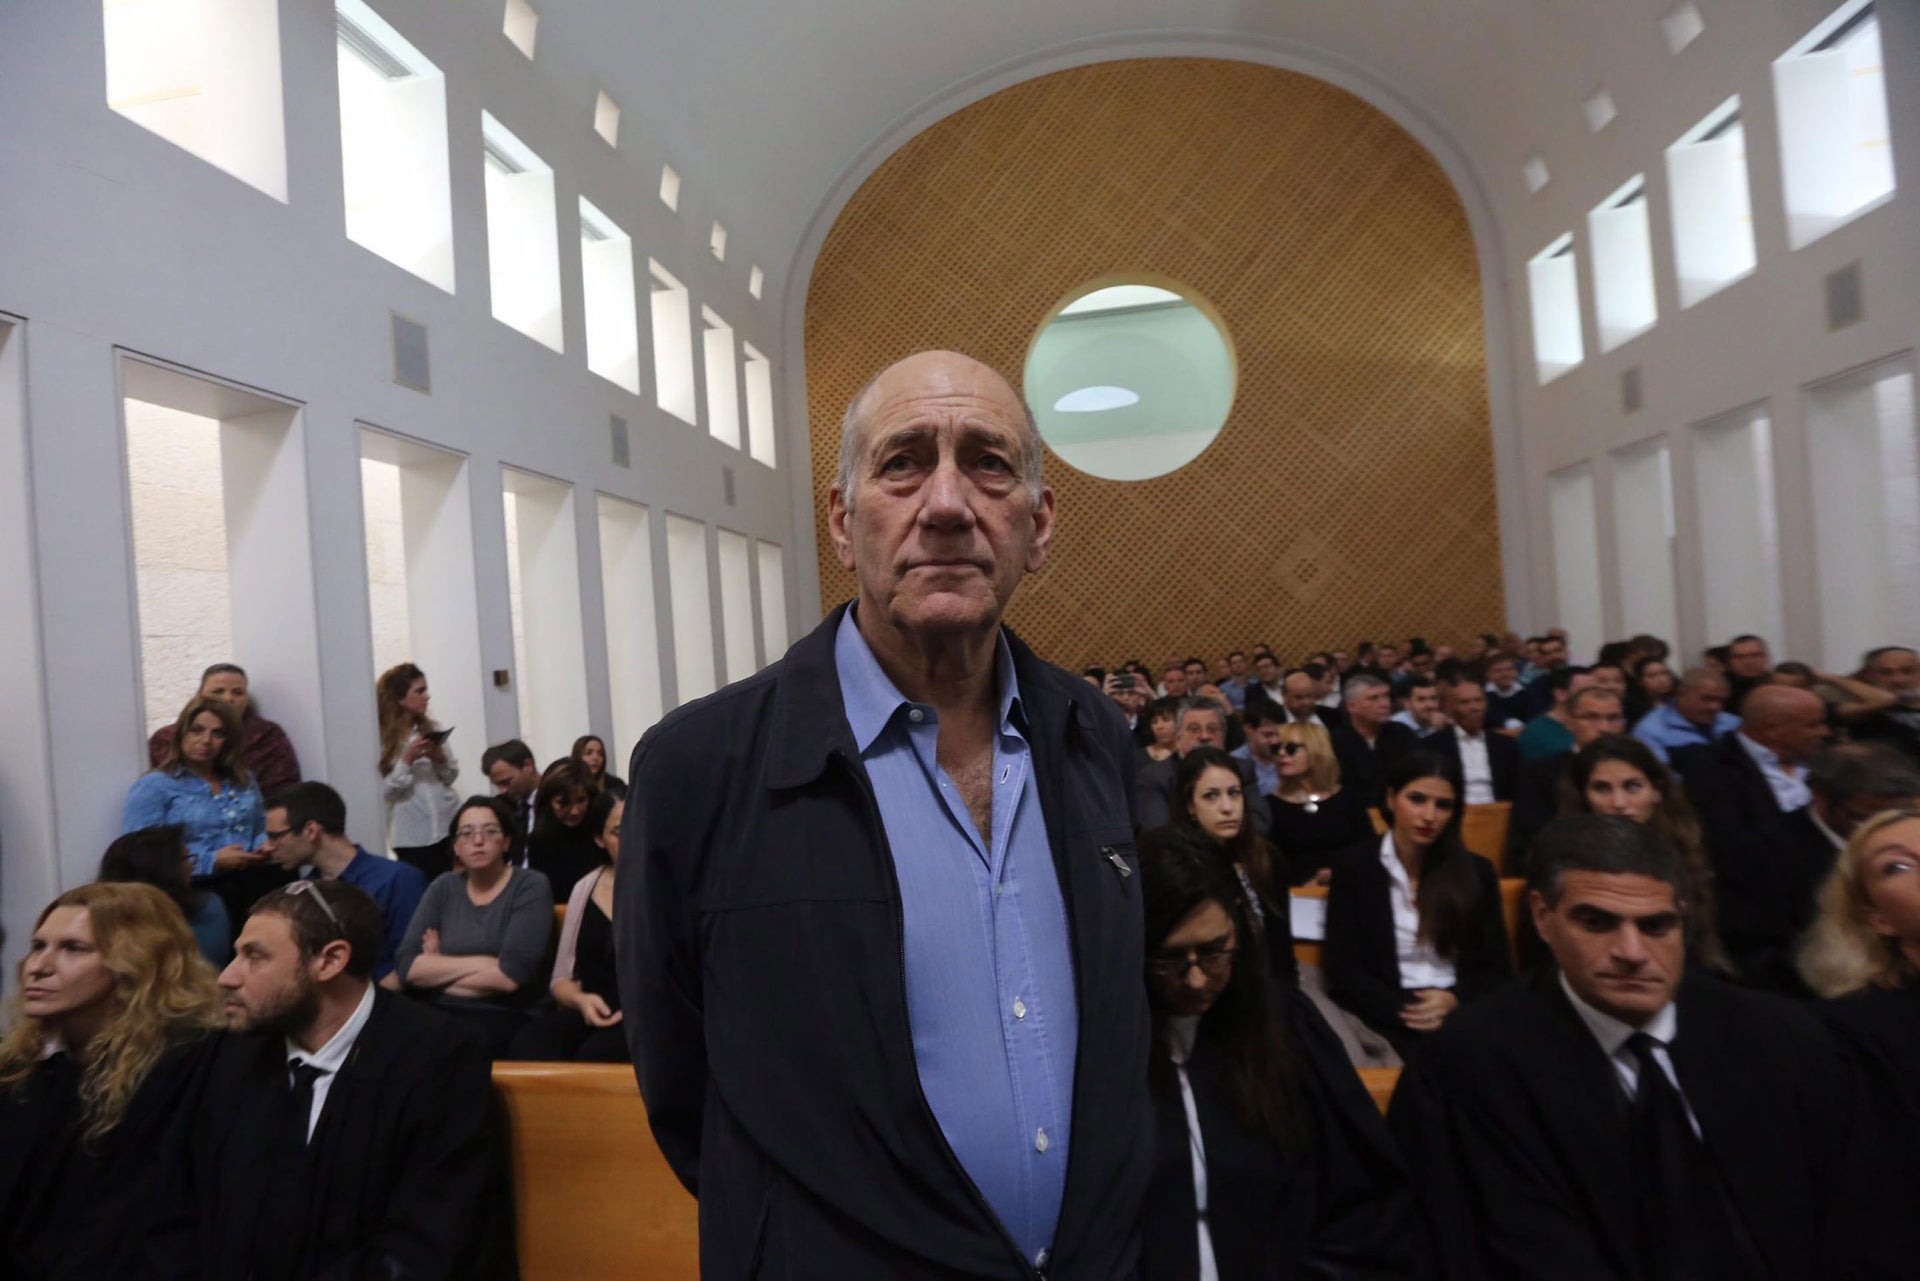 Ehud Olmert at the Supreme Court, during a hearing on the appeal in the Holyland corruption case, Dec. 29, 2015.